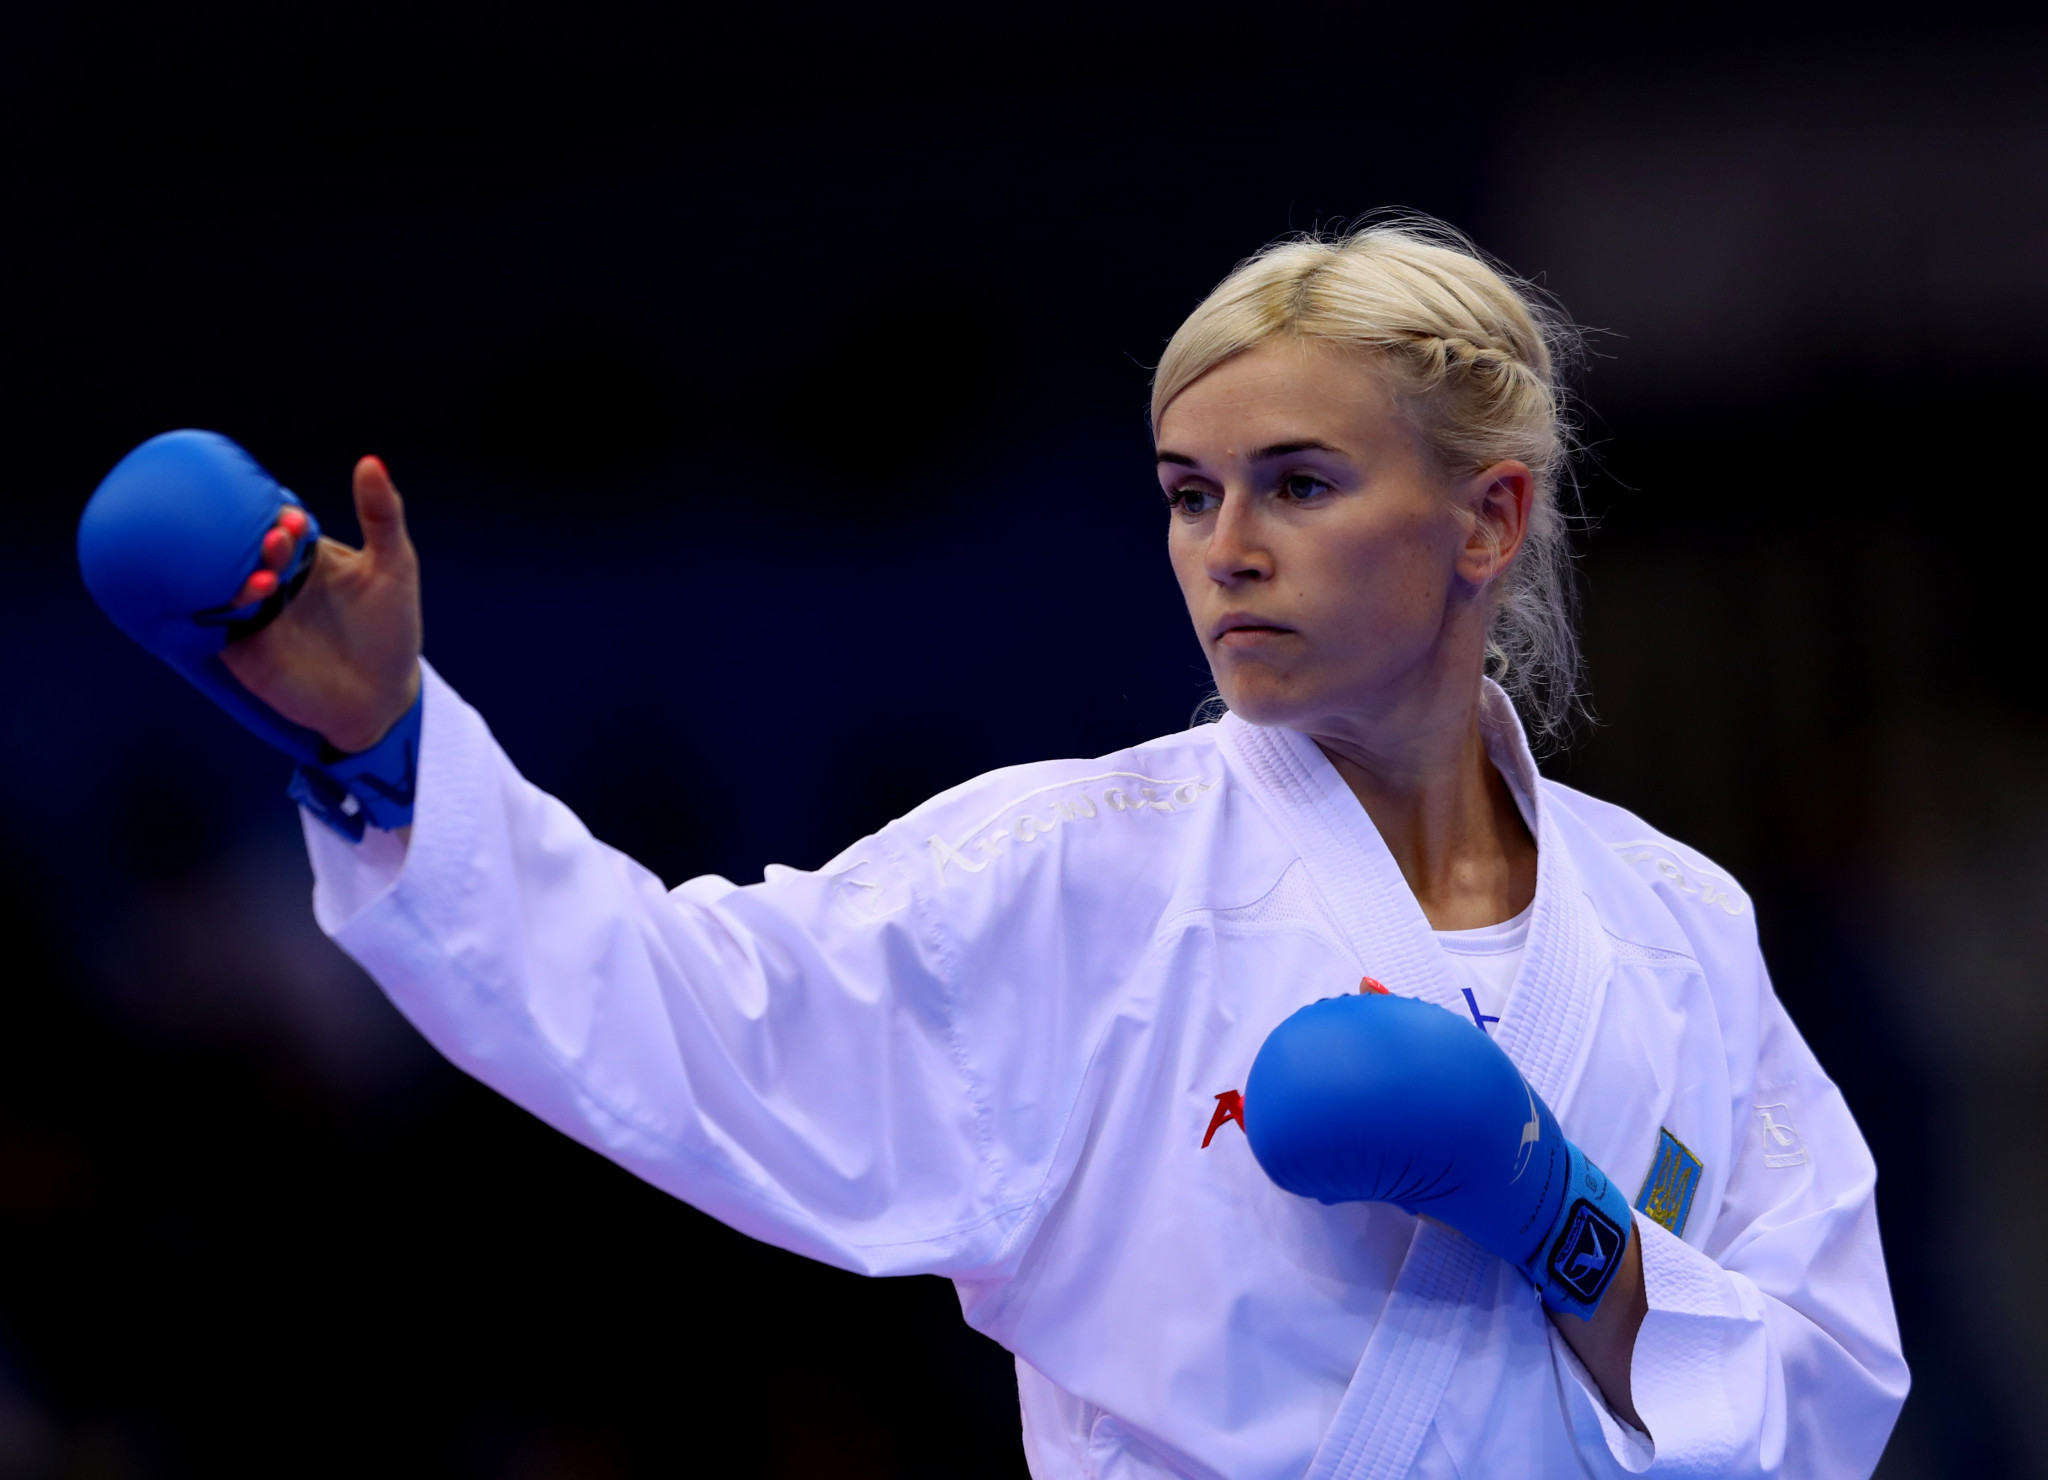 Serogina and Quirici build on Tokyo 2020 appearances by progressing at Karate 1-Premier League in Cairo